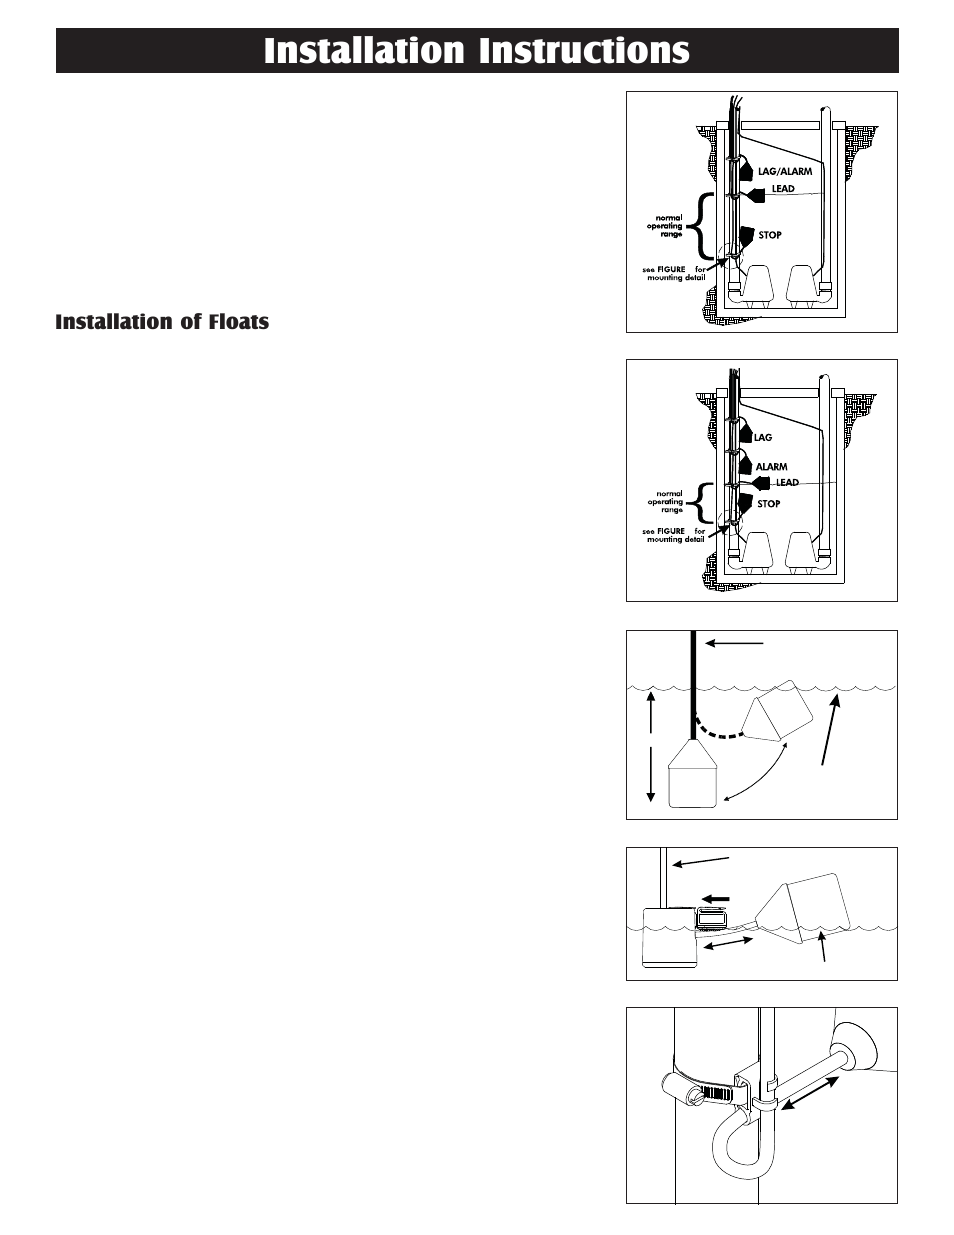 Oil Pump Location And Replacement Manual Guide